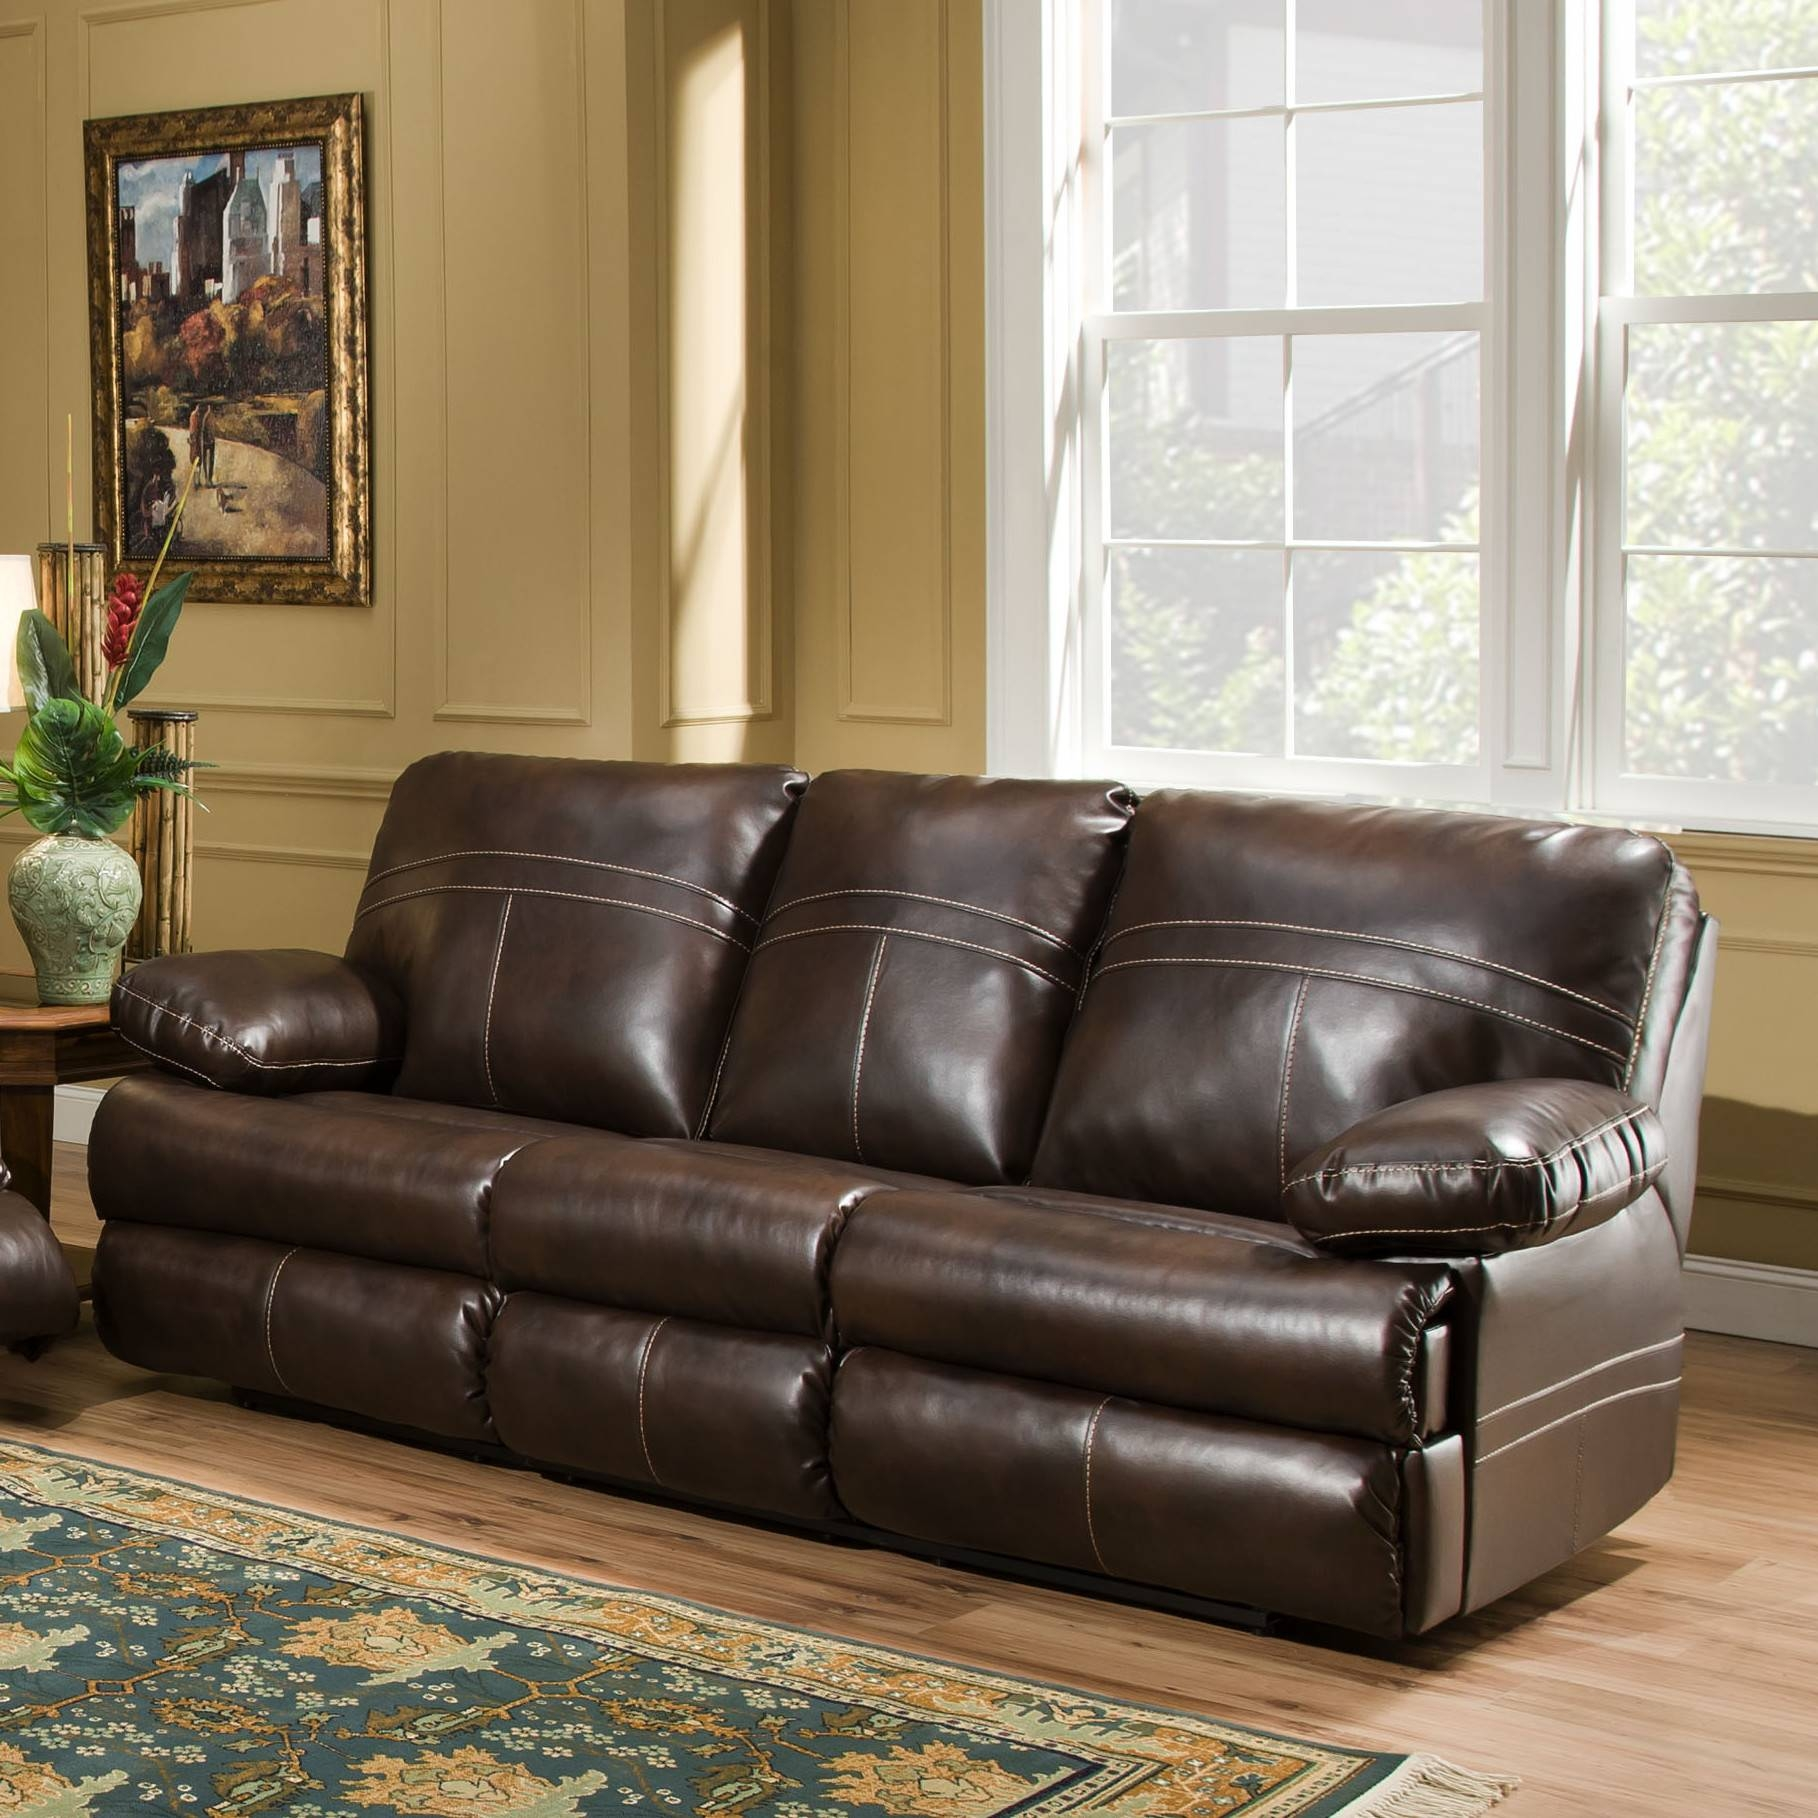 Furniture: Simmons Couch | Cheap Leather Couches | Big Lots pertaining to Big Lots Simmons Furniture (Image 5 of 15)